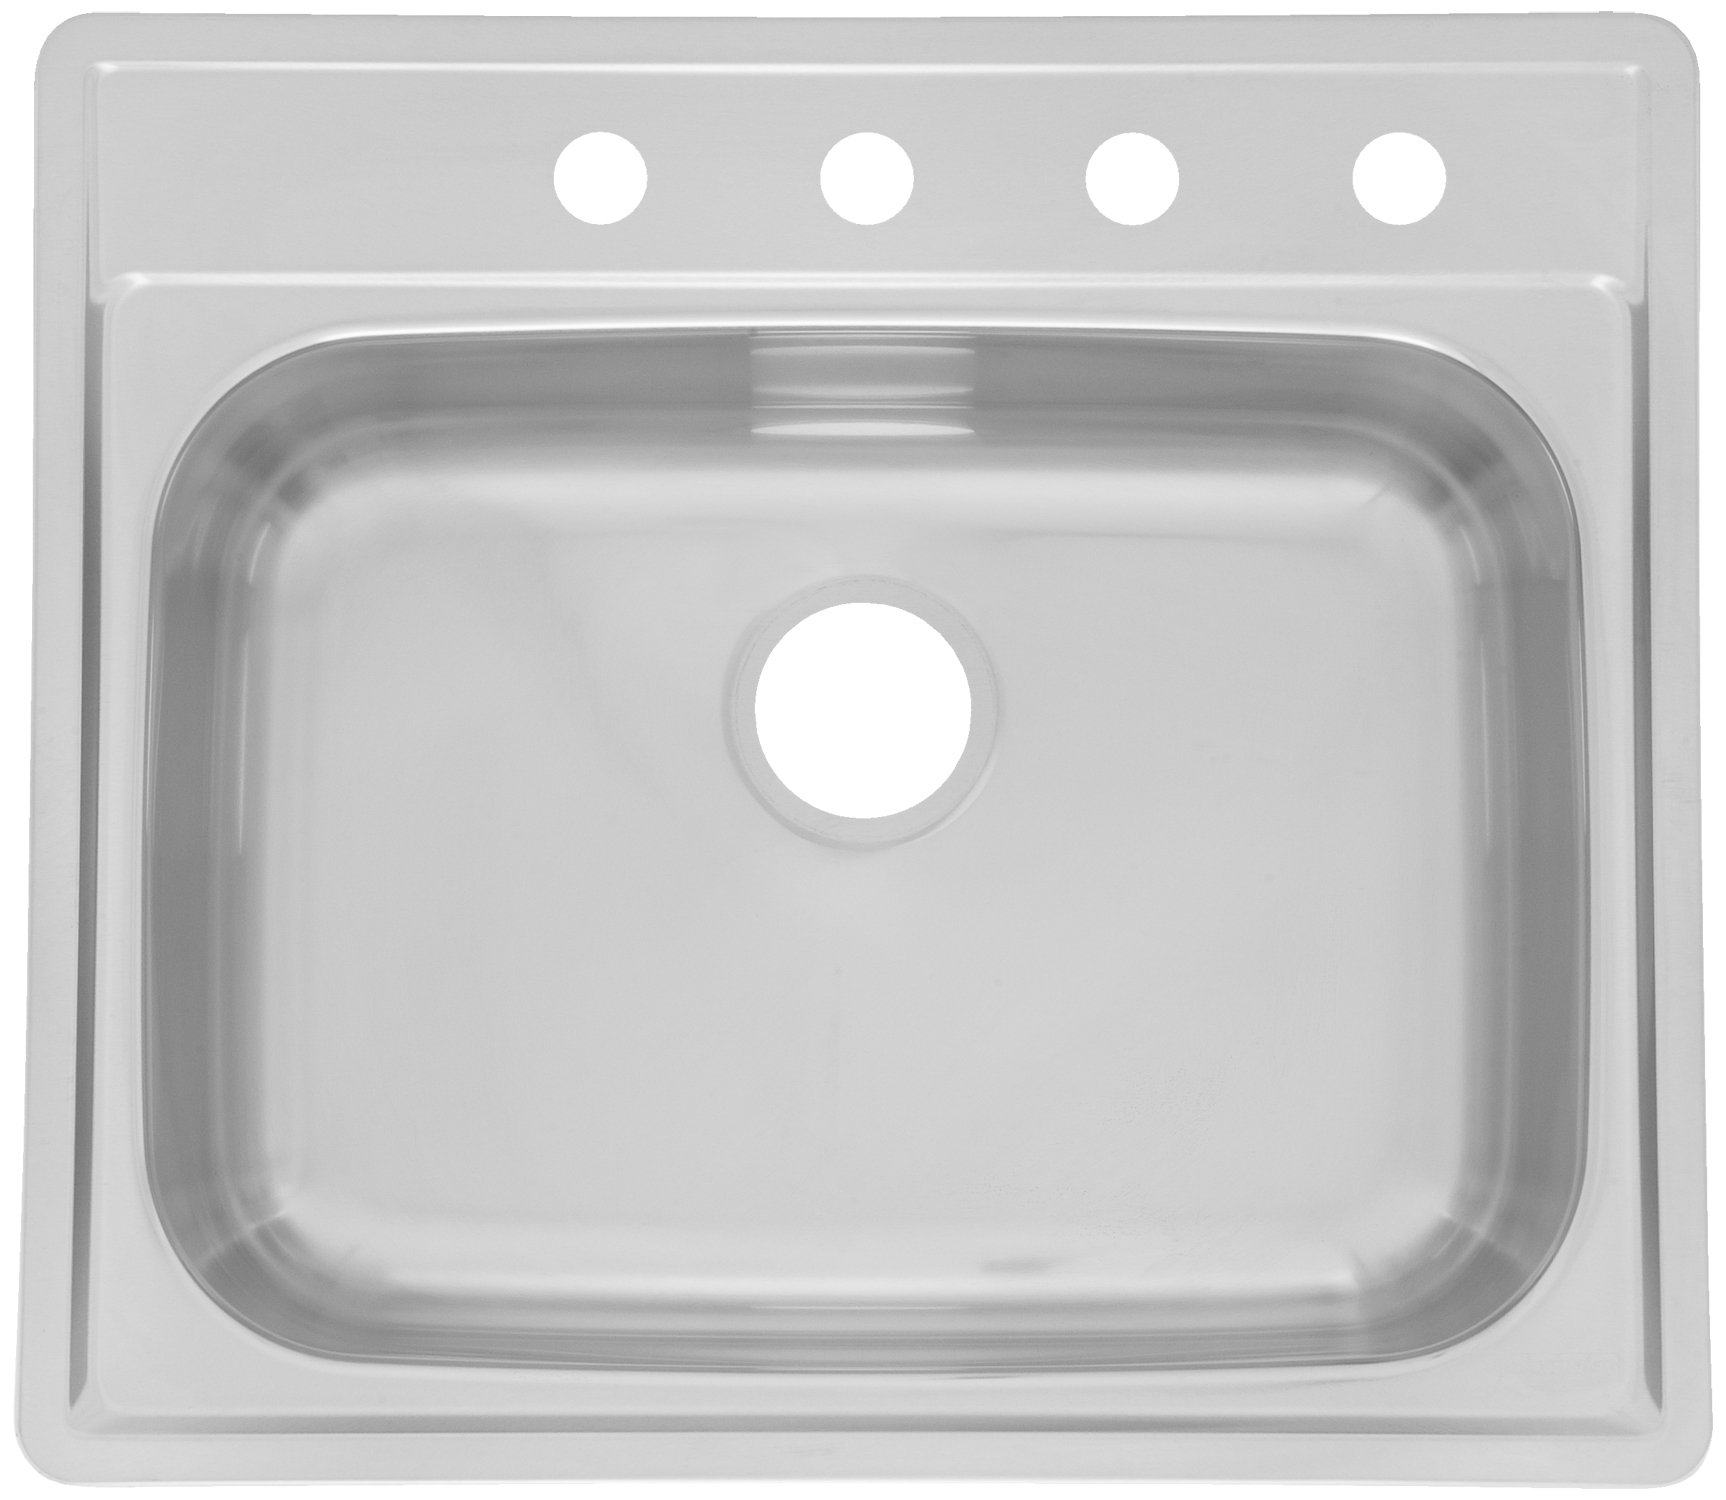 Kindred SSK854NB Single Bowl Stainless Steel 21.5x22in. Topmount Sink